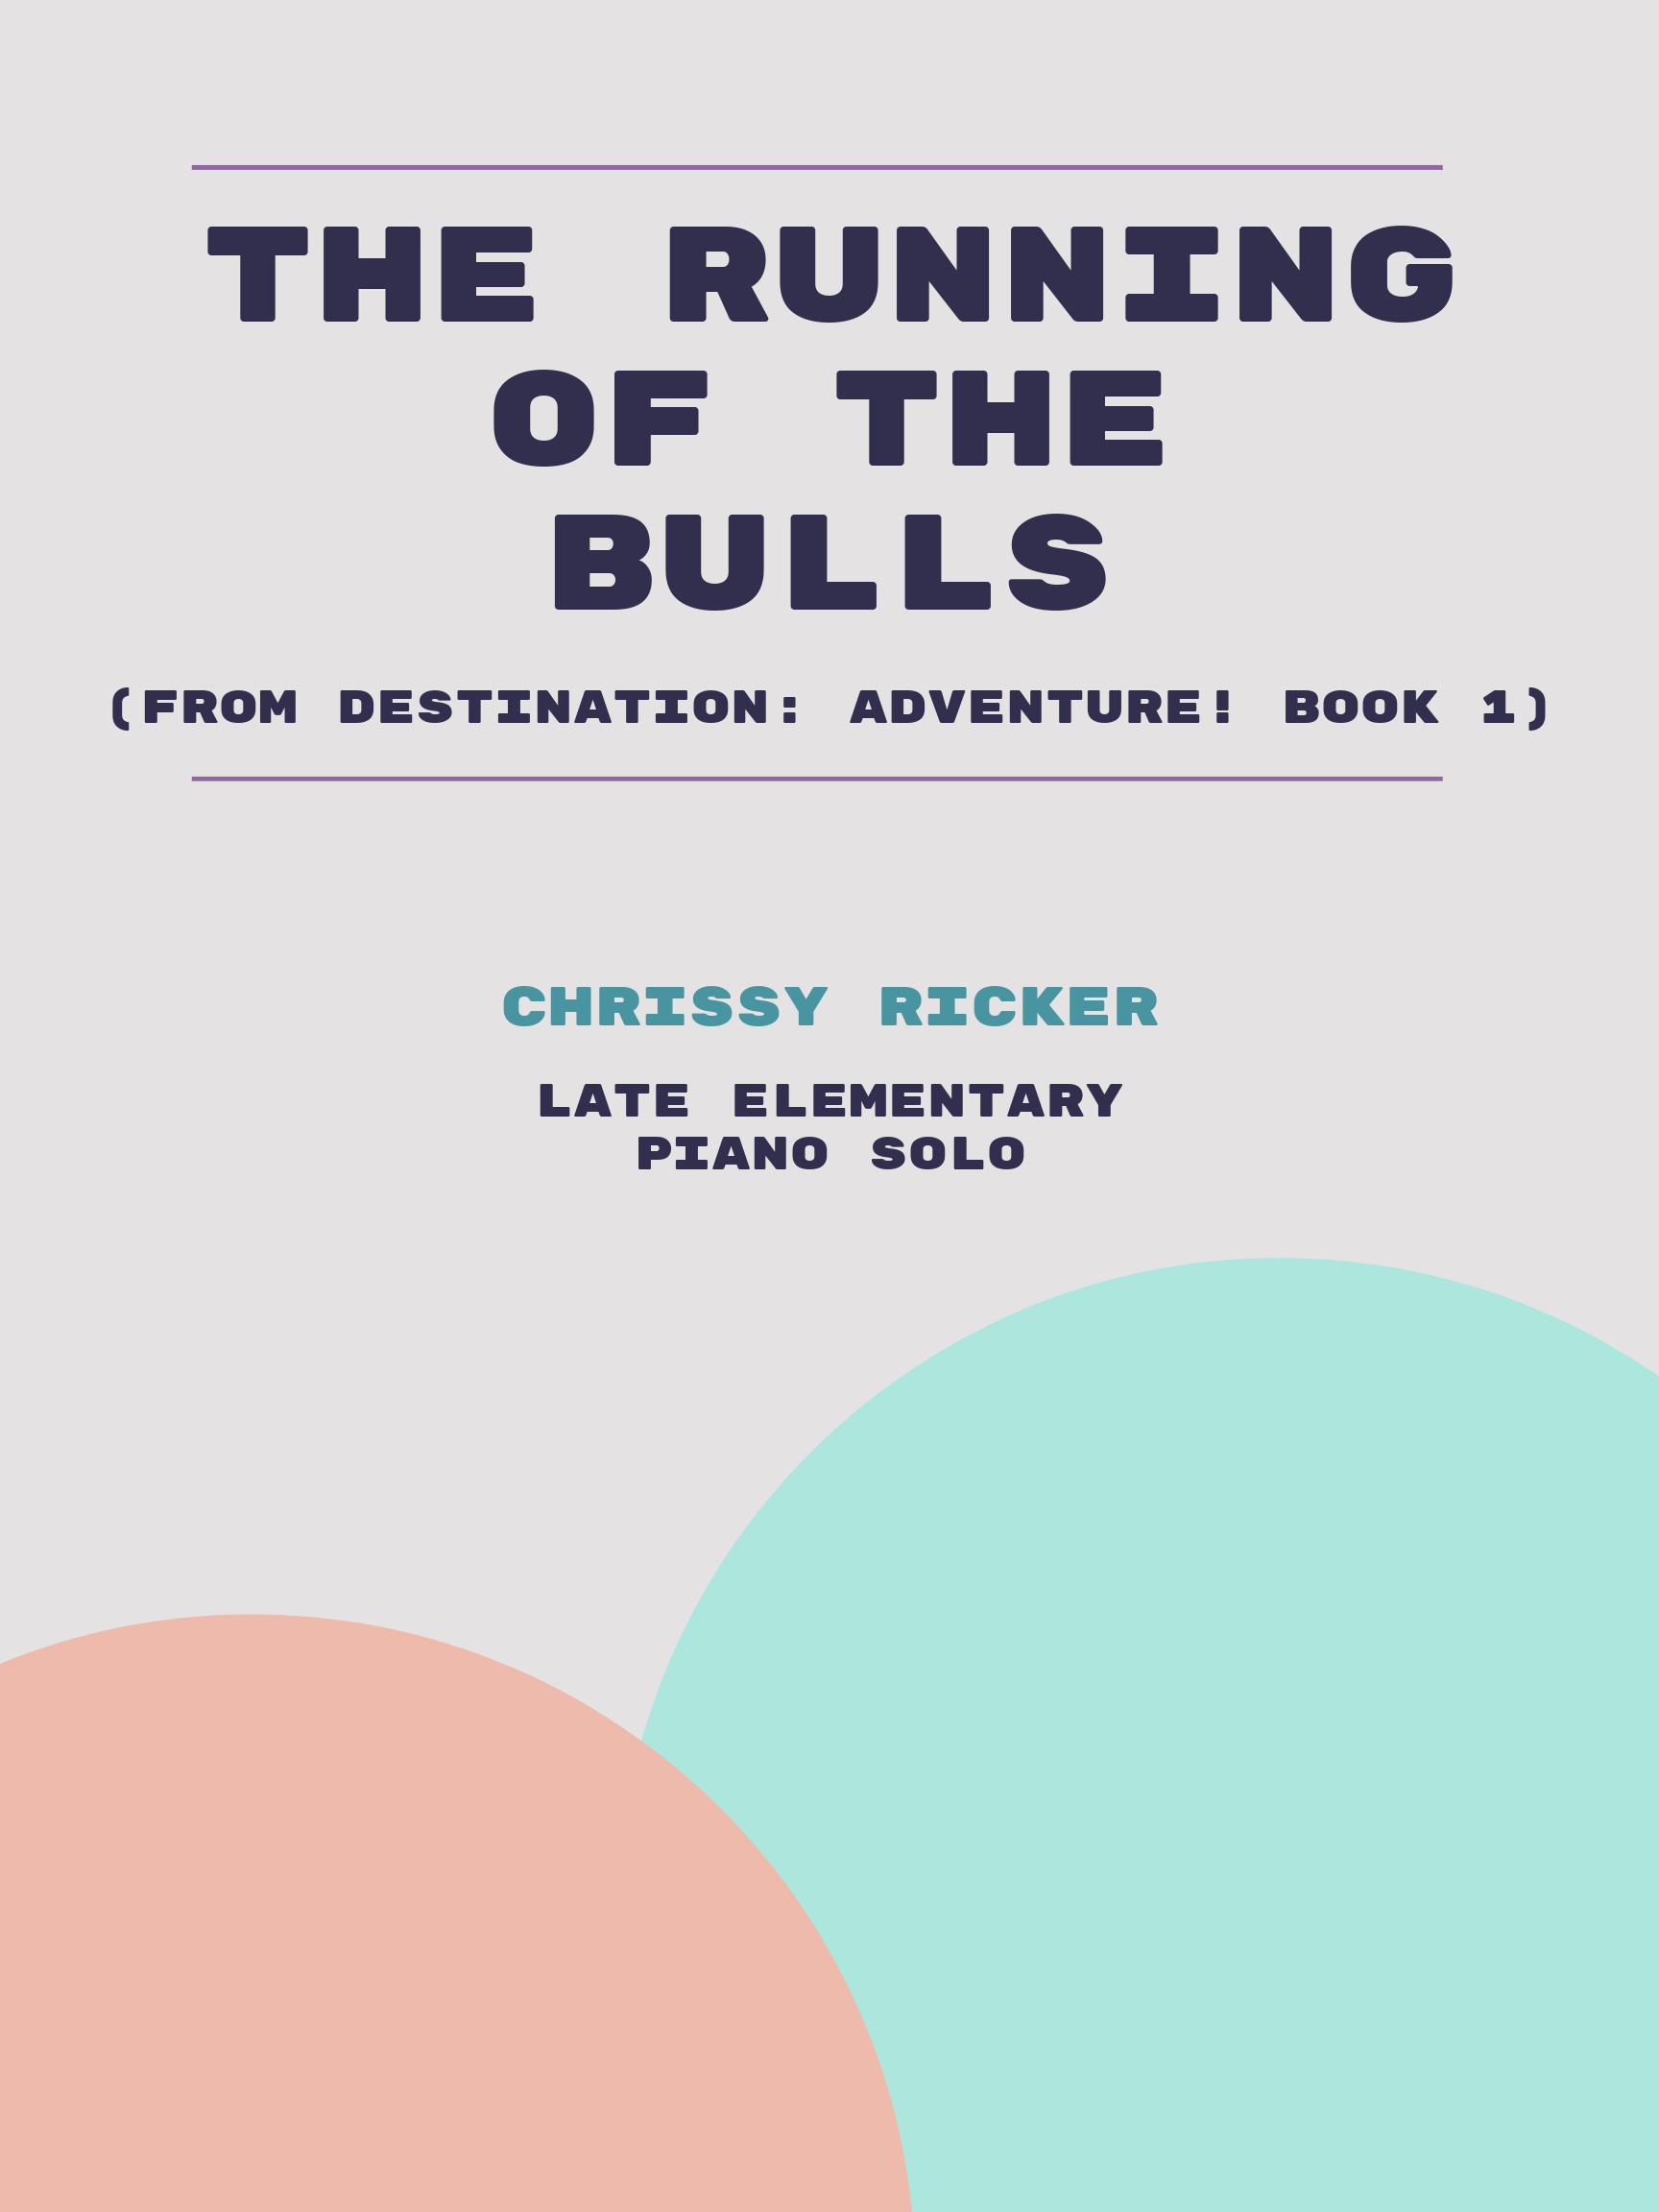 The Running of the Bulls by Chrissy Ricker